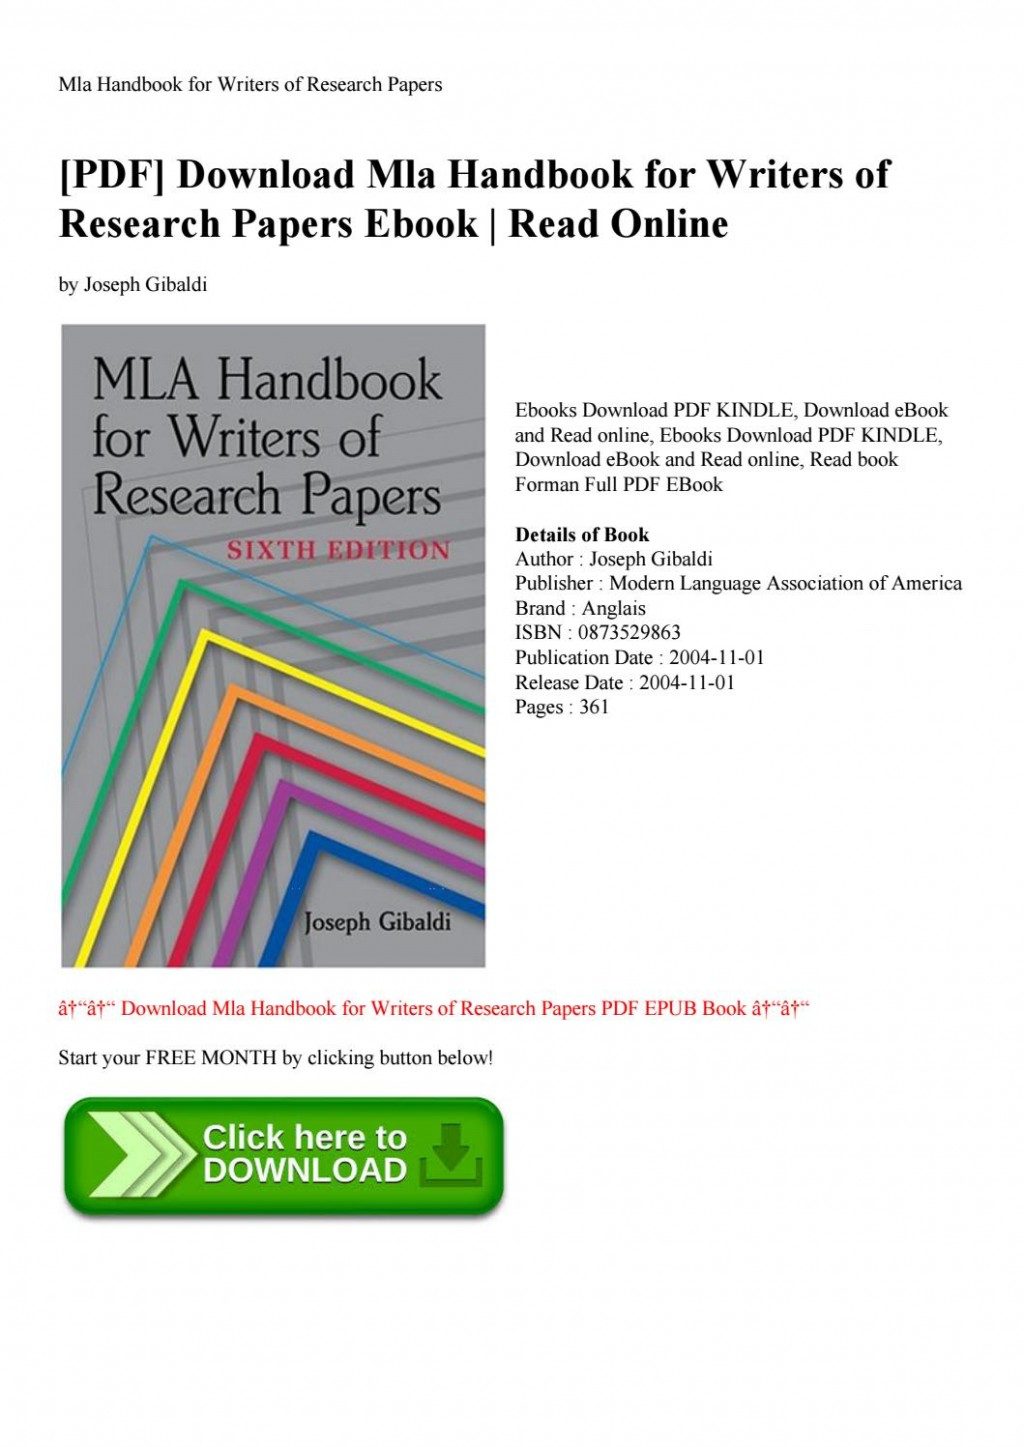 004 Research Paper Page 1 Mla Handbook For Writing Frightening Papers Writers Of 8th Edition Pdf Free Download According To The Large